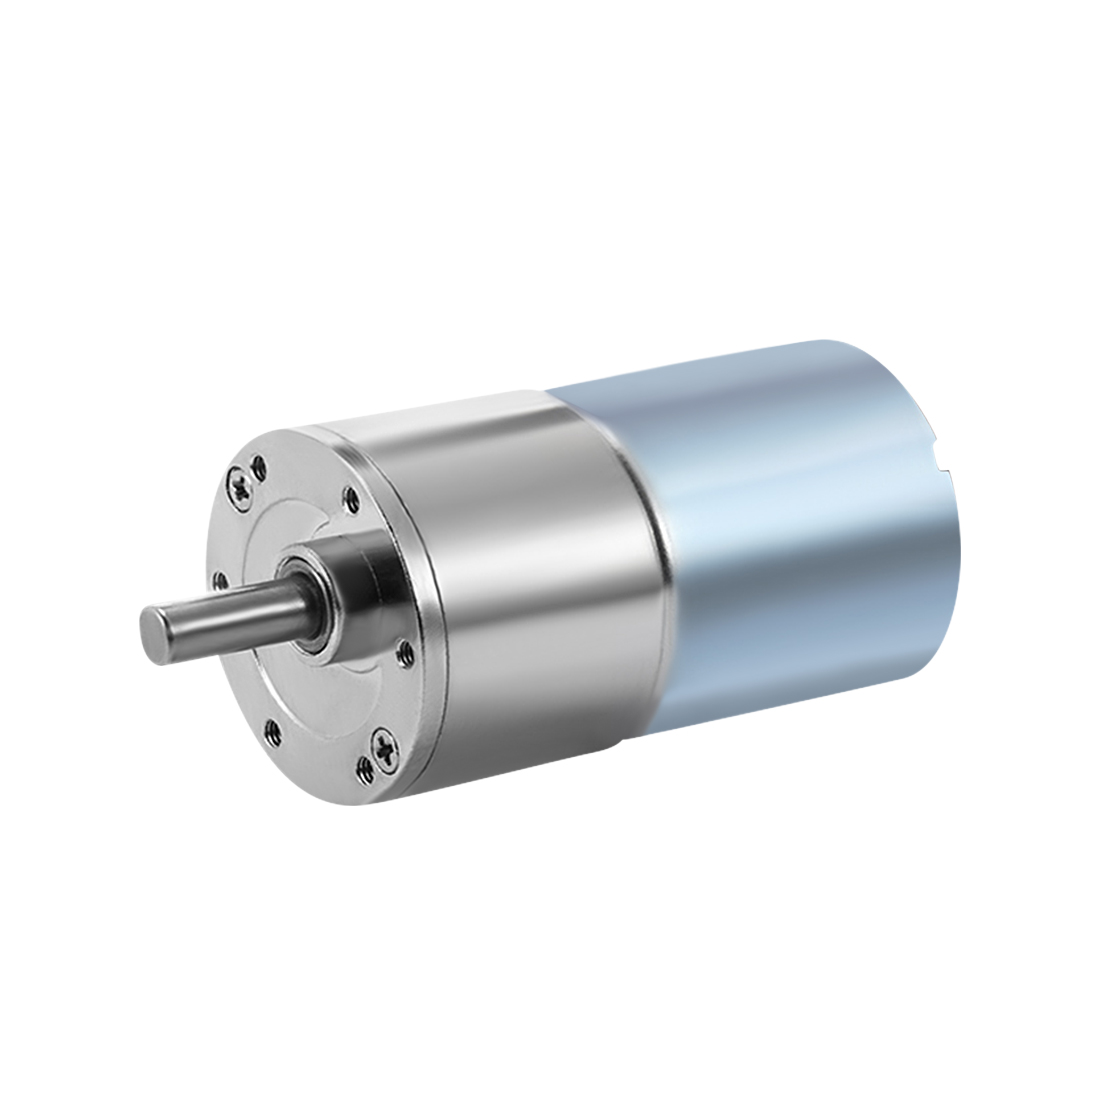 DC 12V 60RPM Micro Gear Box Motor Speed Reduction Electric Gearbox Eccentric Output Shaft